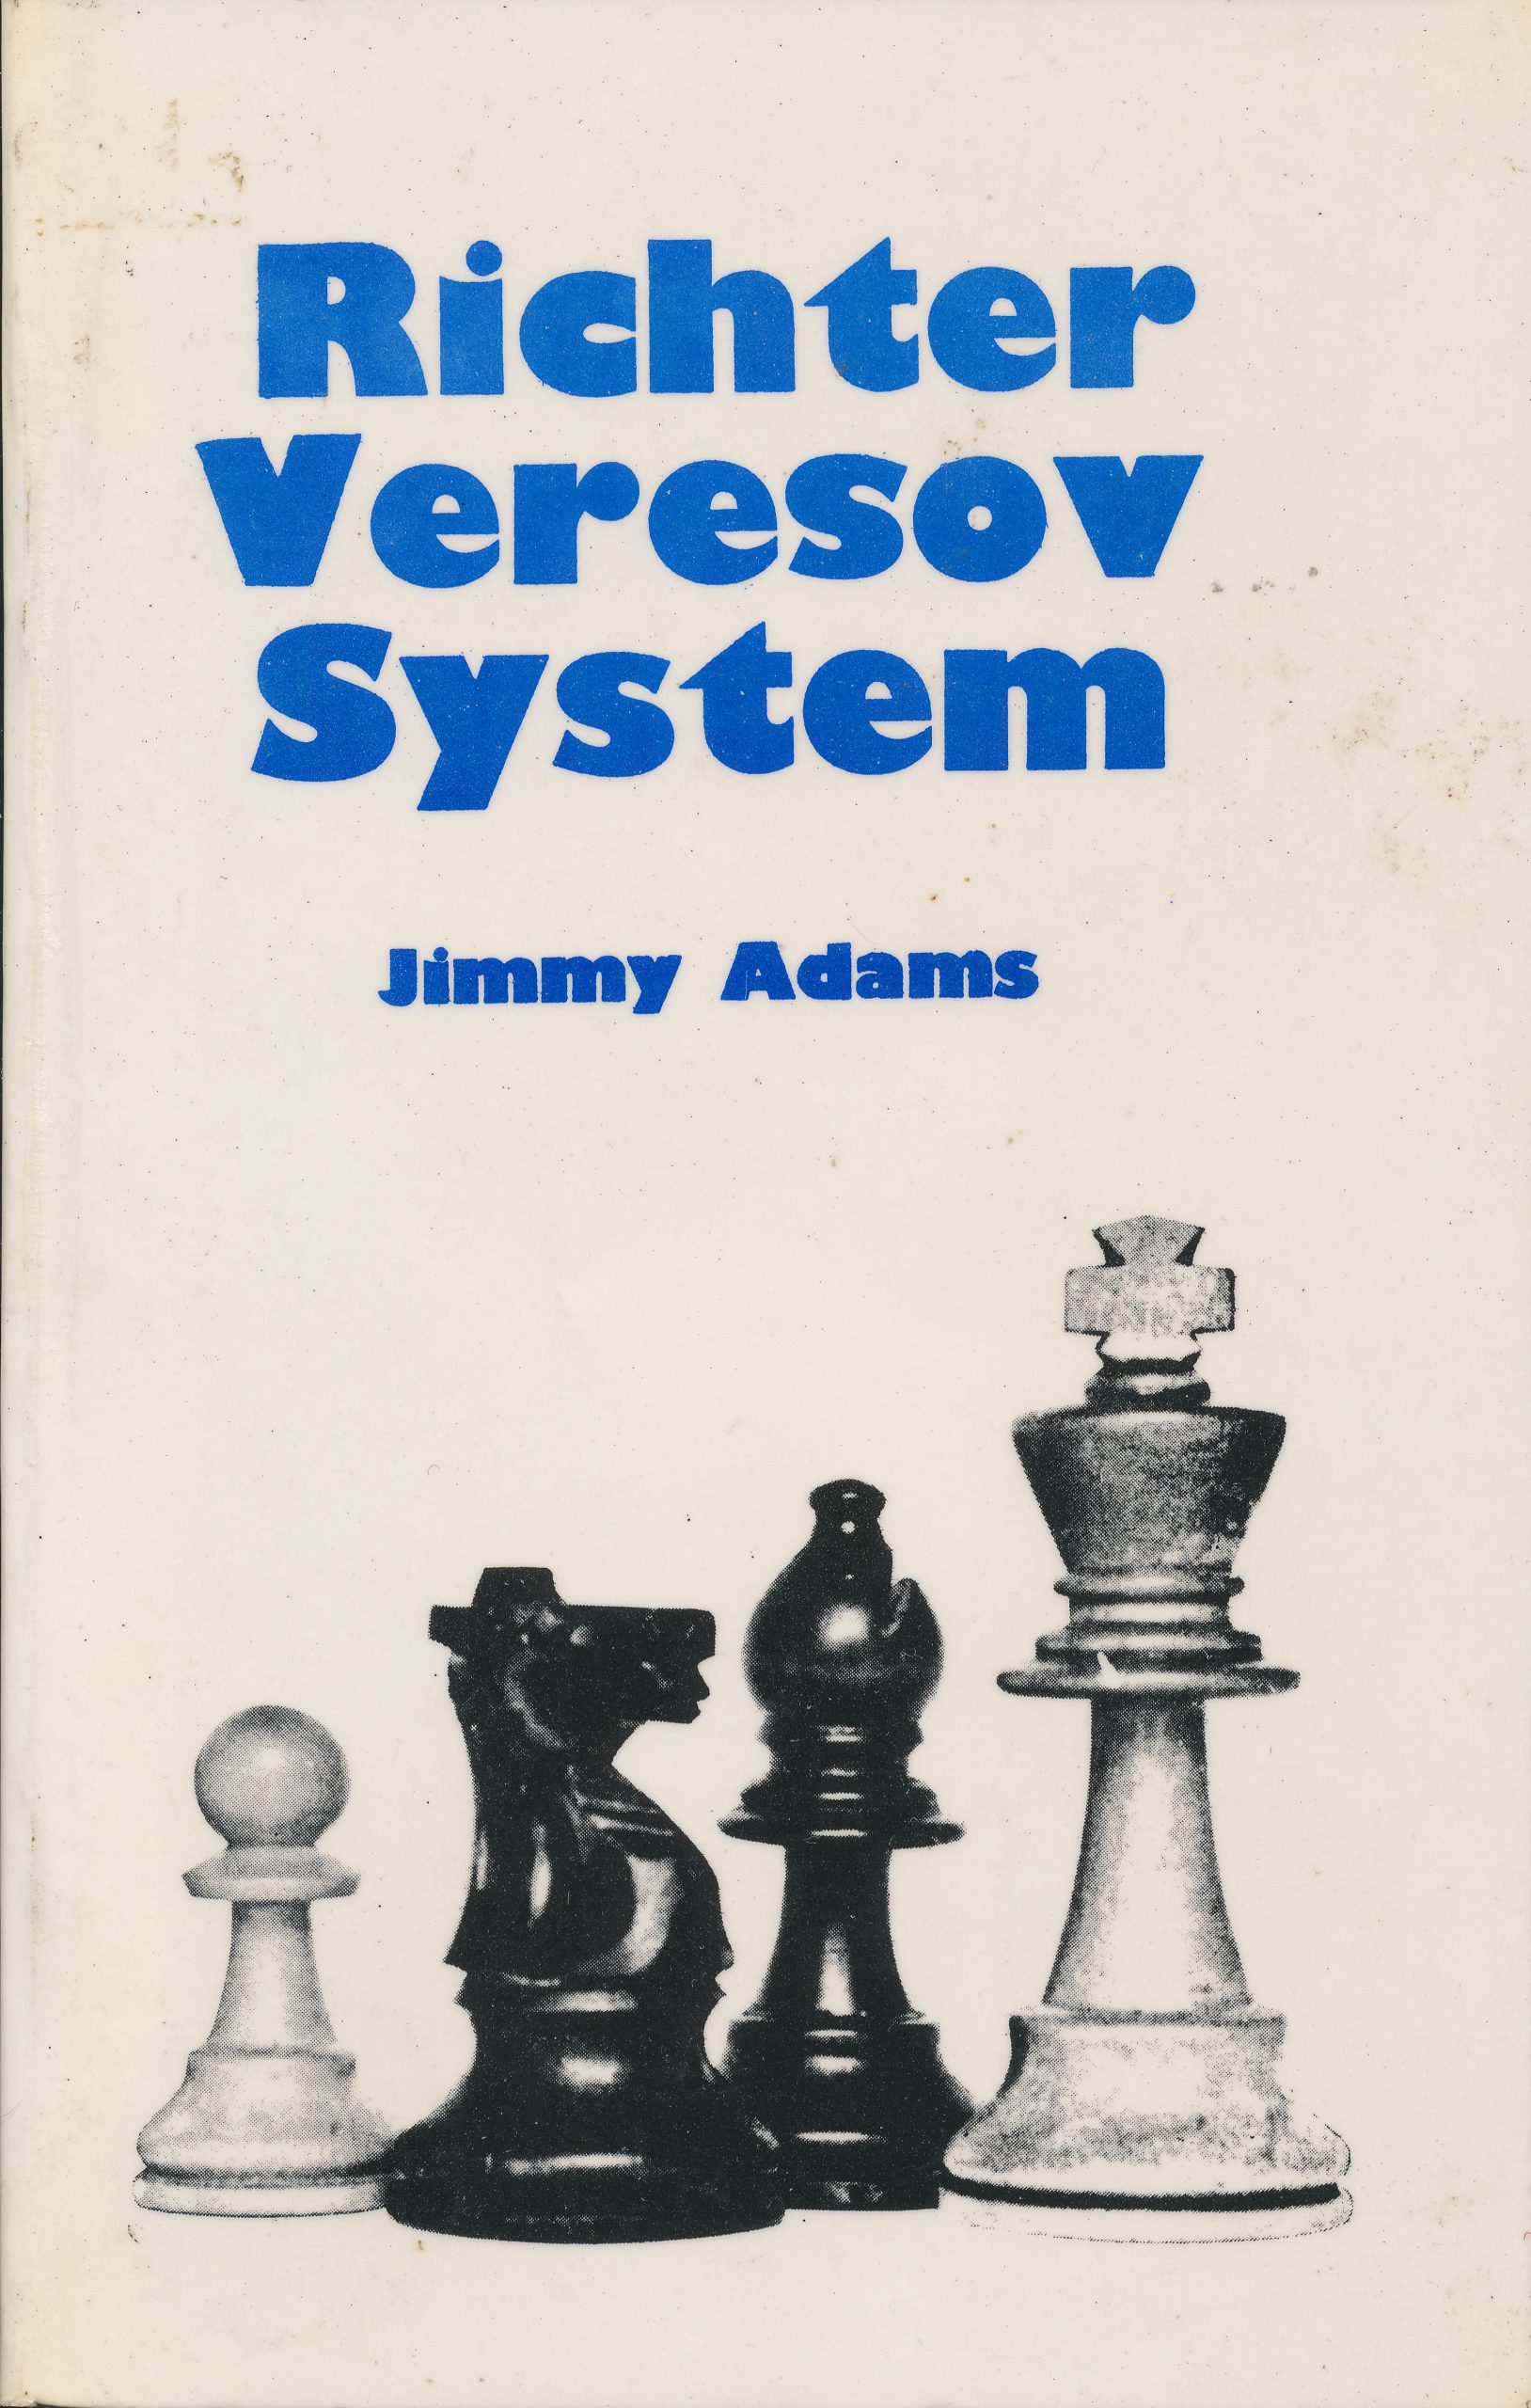 The Richter Veresov System, The Chess Player, Jimmy Adams, 1978